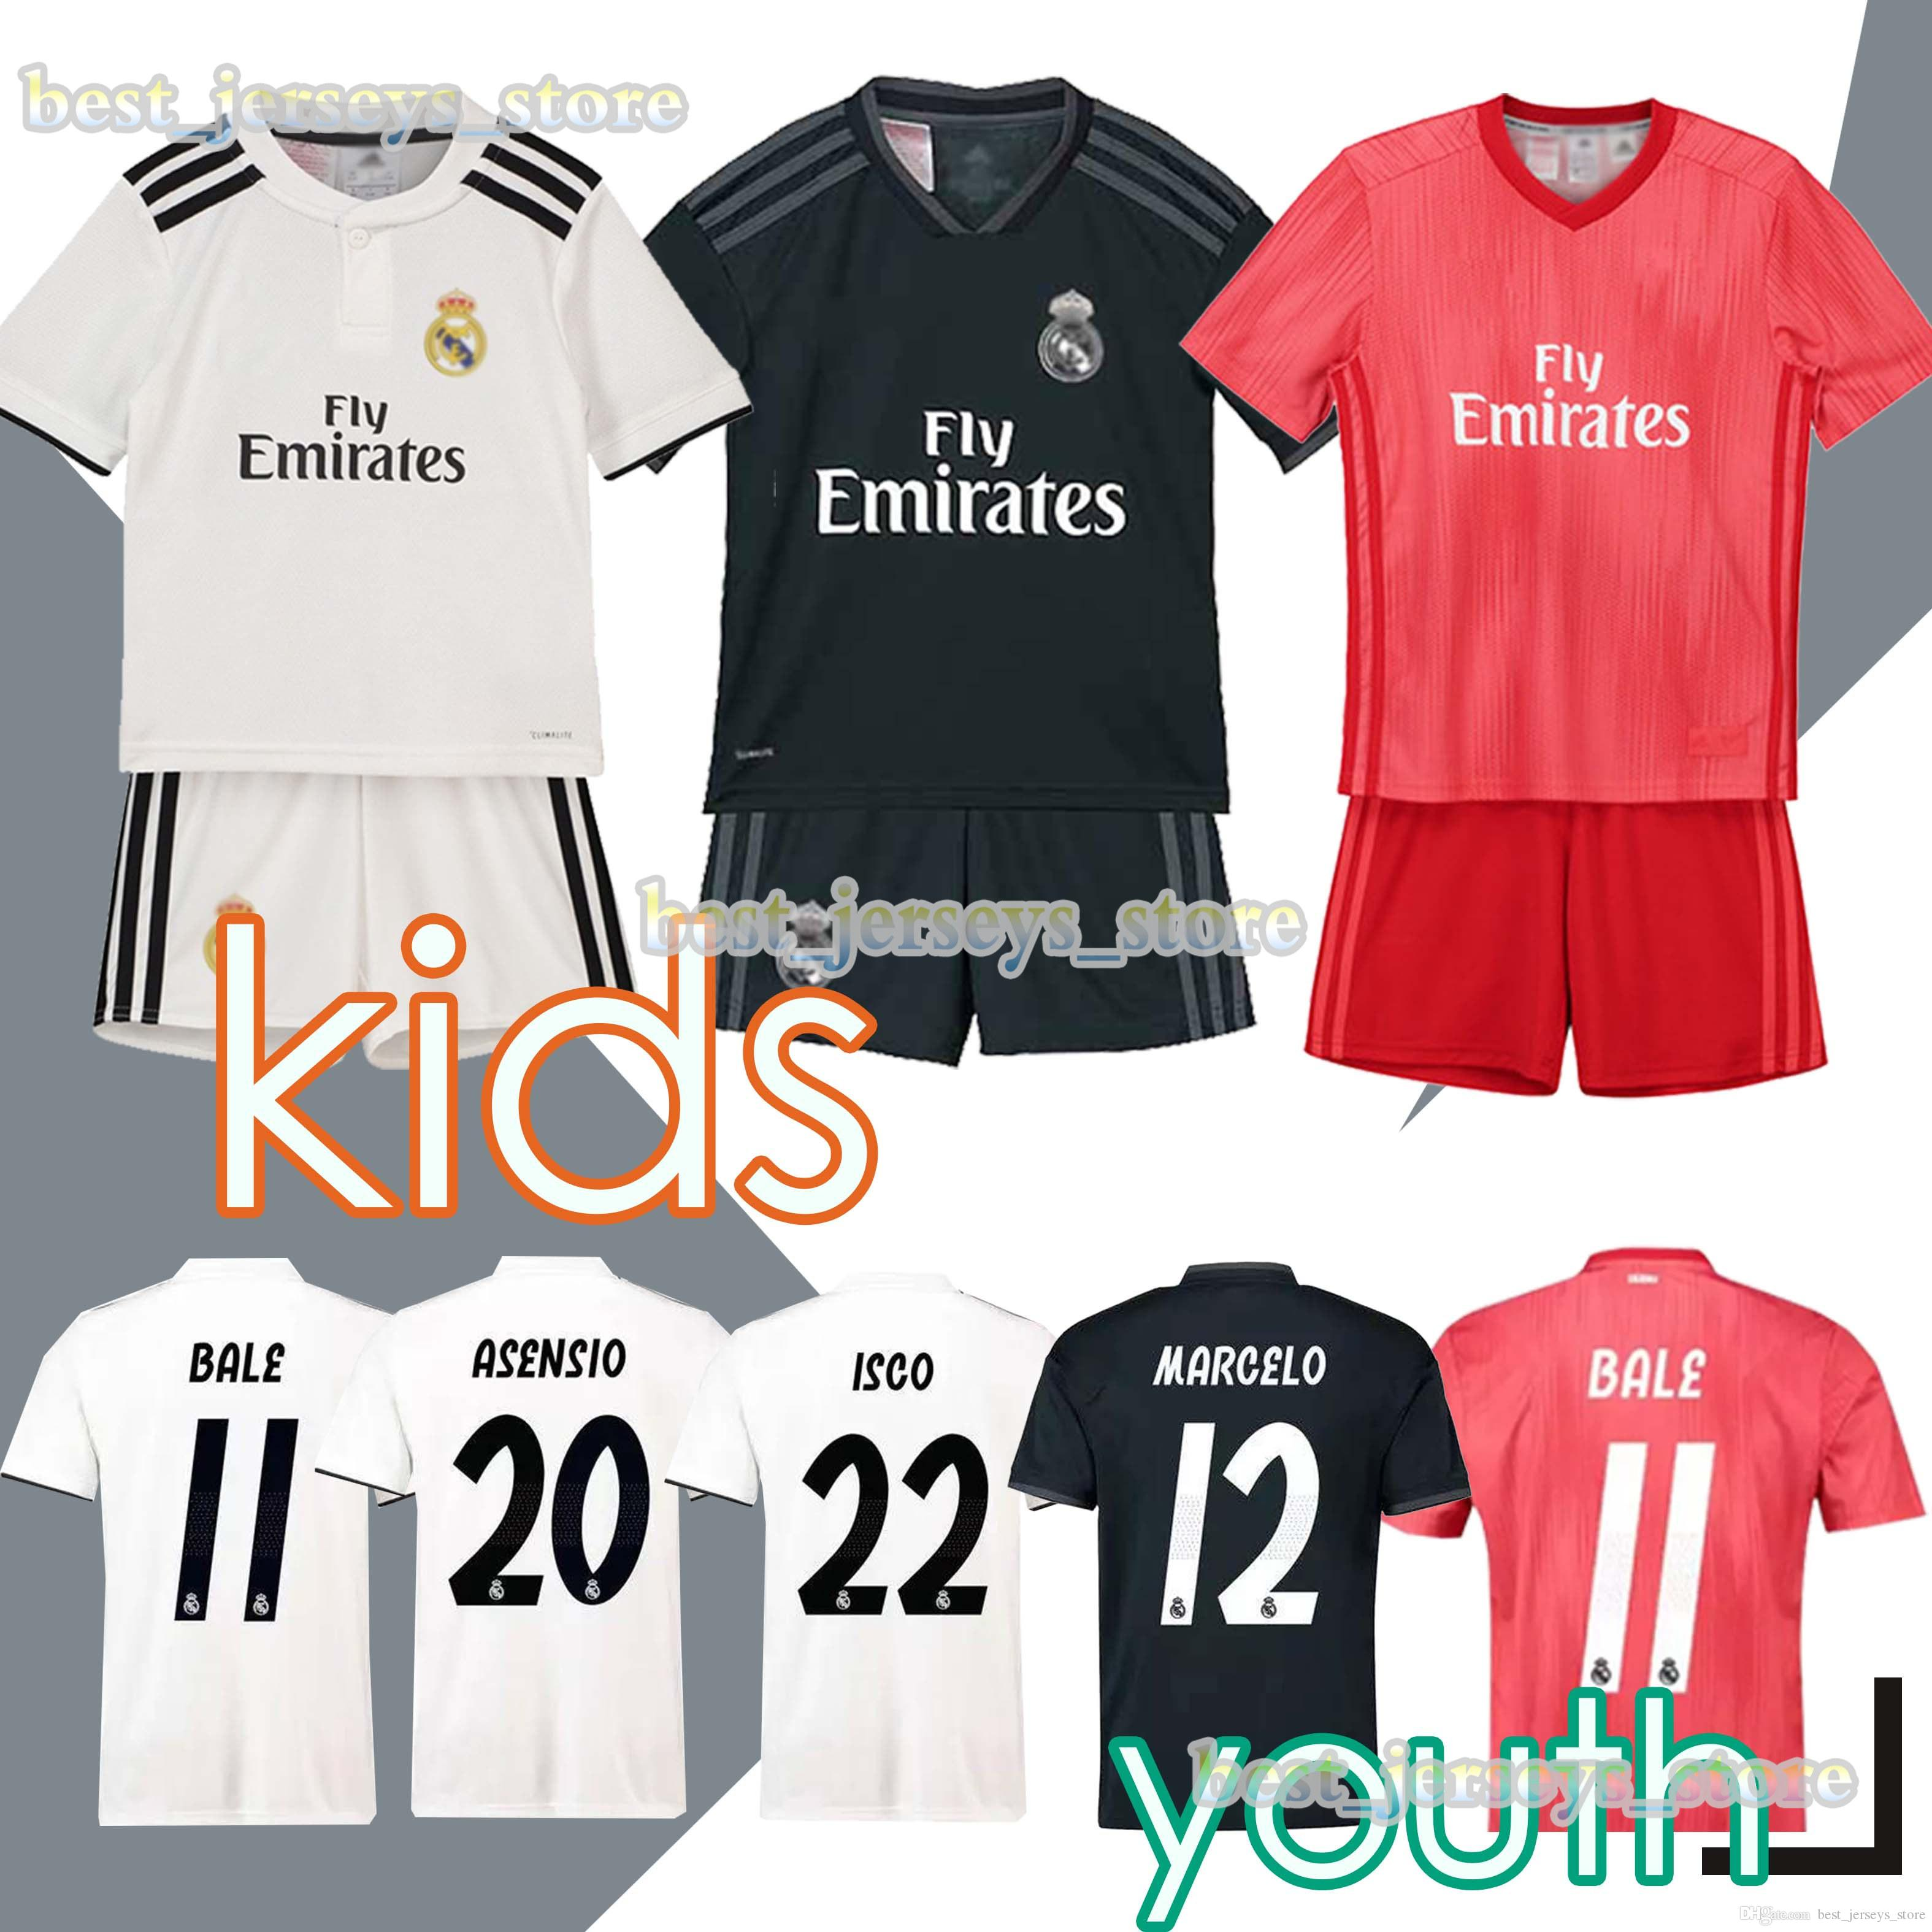 3e7e21dbe 2019 2019 Kids Kit Real Madrid Football Jersey 2018 19 Home White Away Boy  Soccer Jerseys ISCO ASENSIO BALE KROOS Child 3rd Soccer Shirts From ...